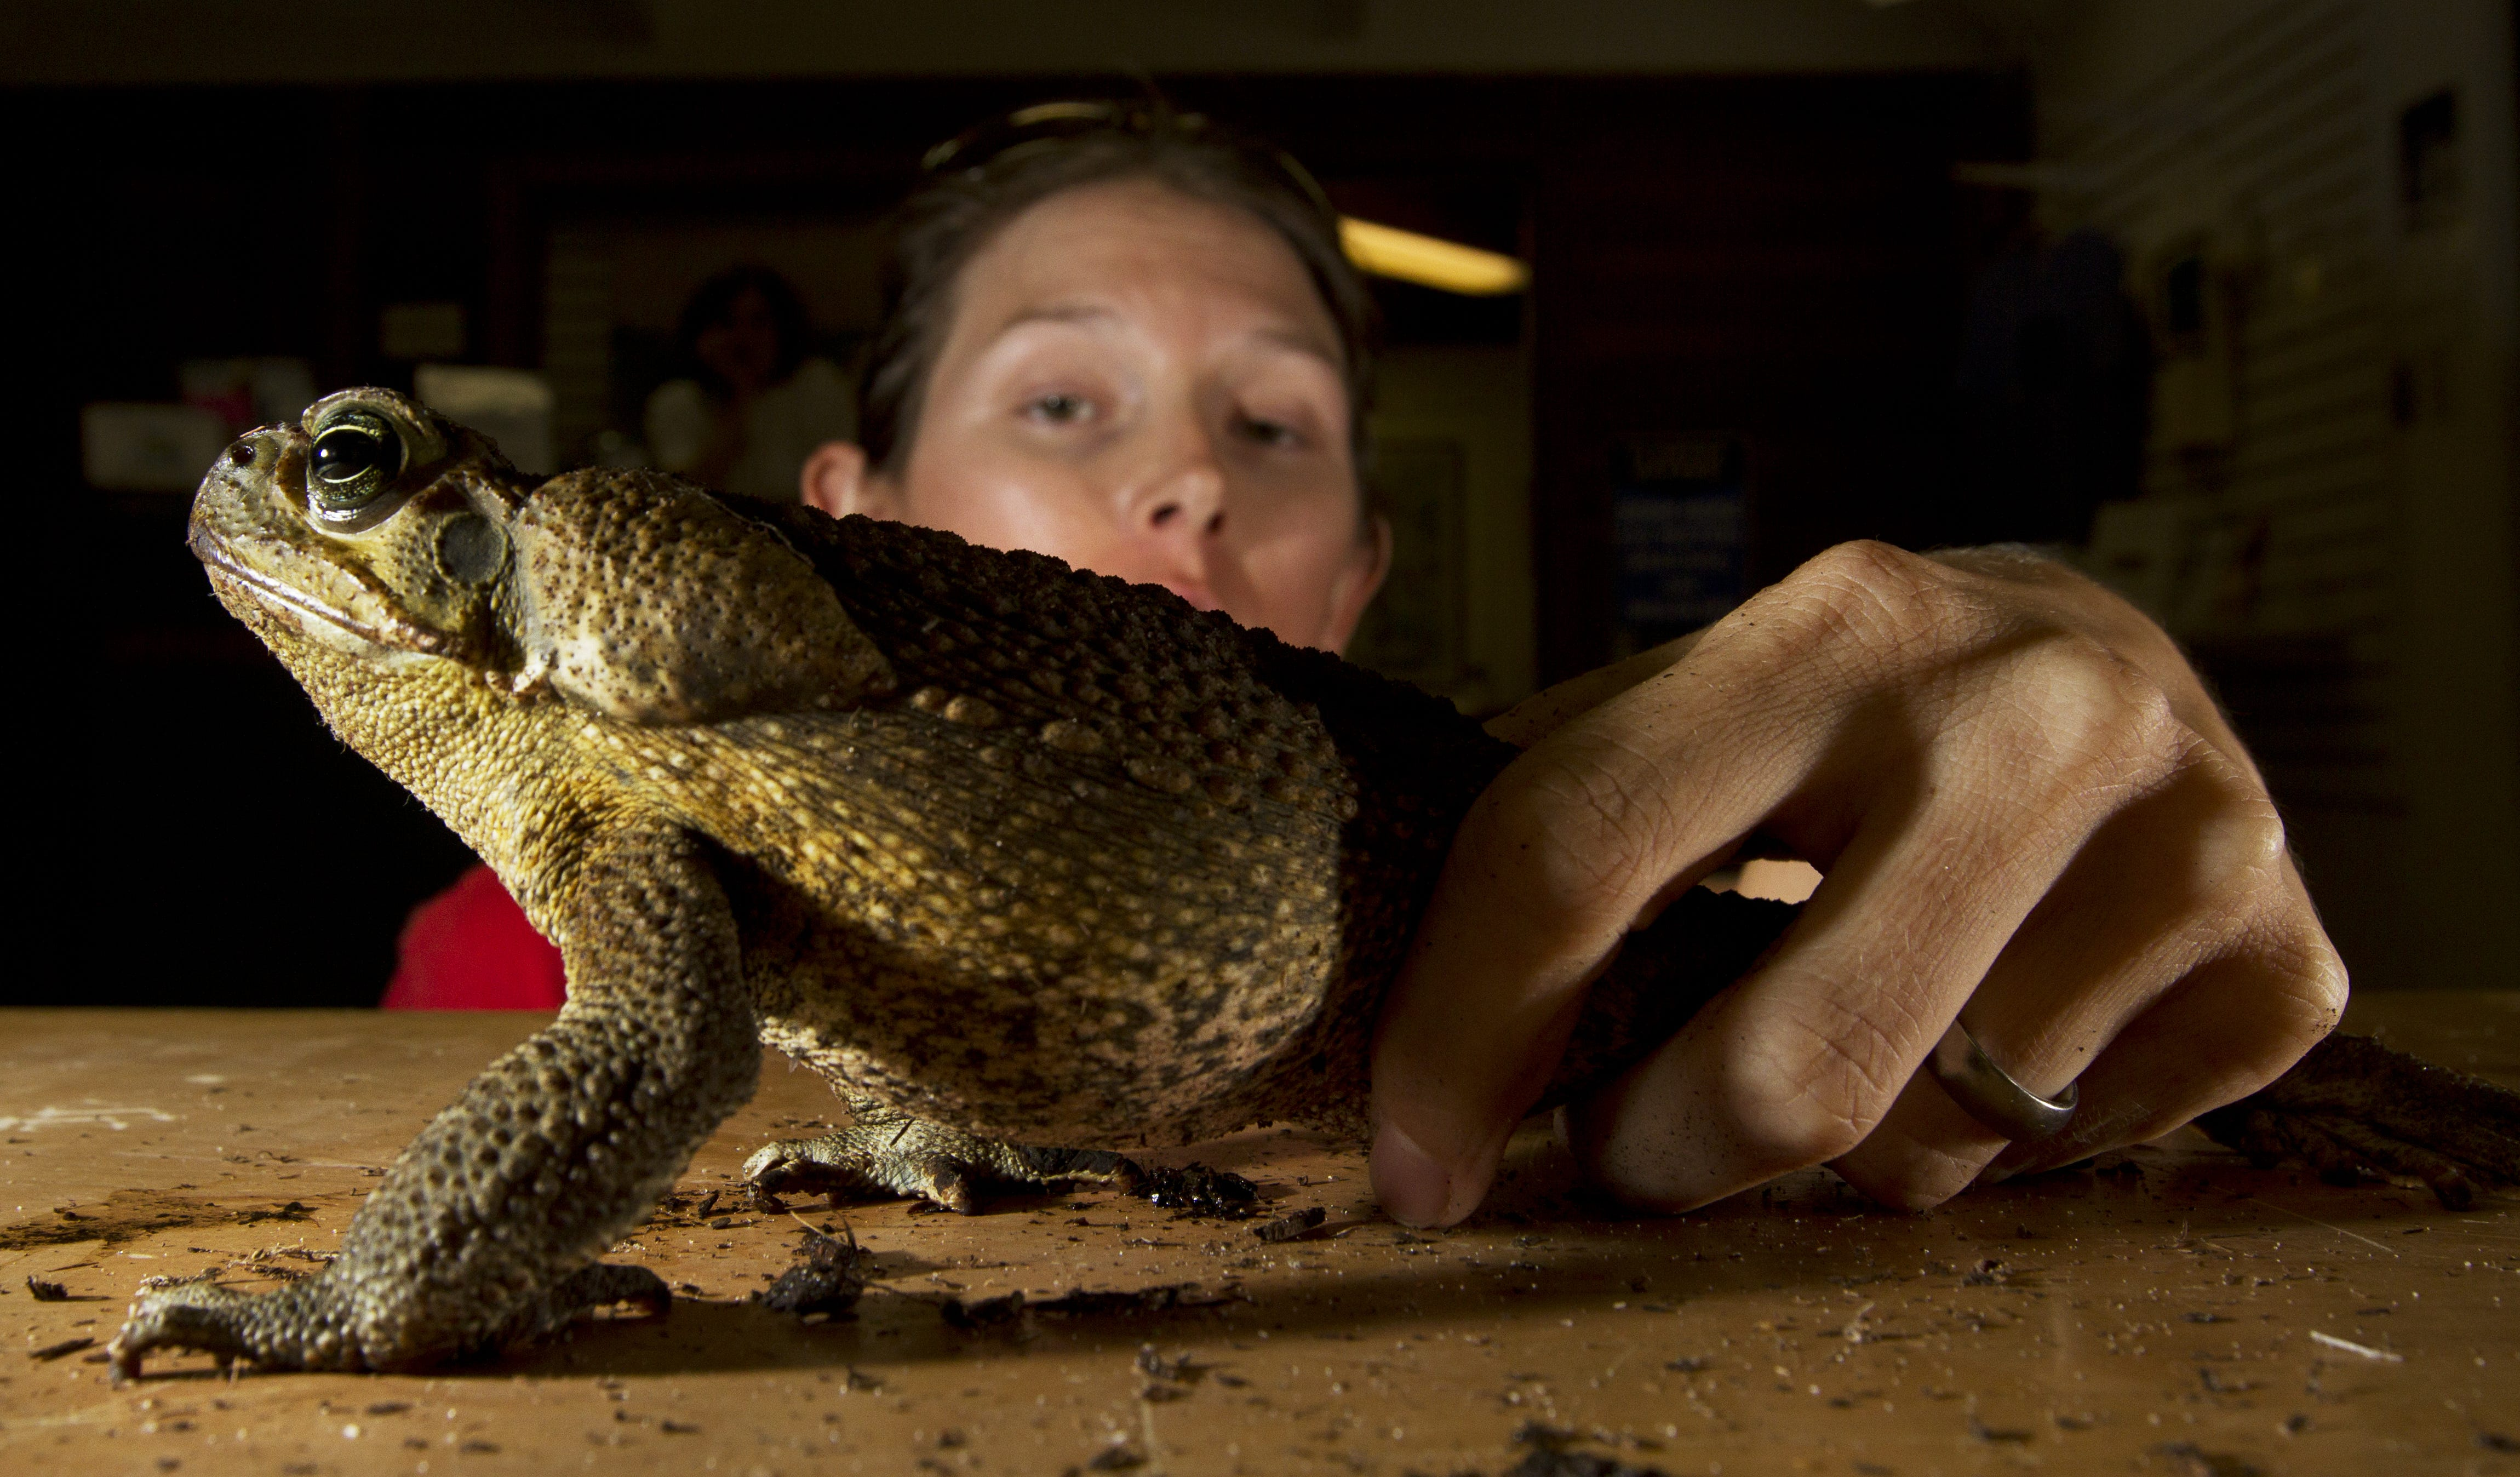 Toxic toads infested a Florida neighborhood. Here's what to know about cane toads.